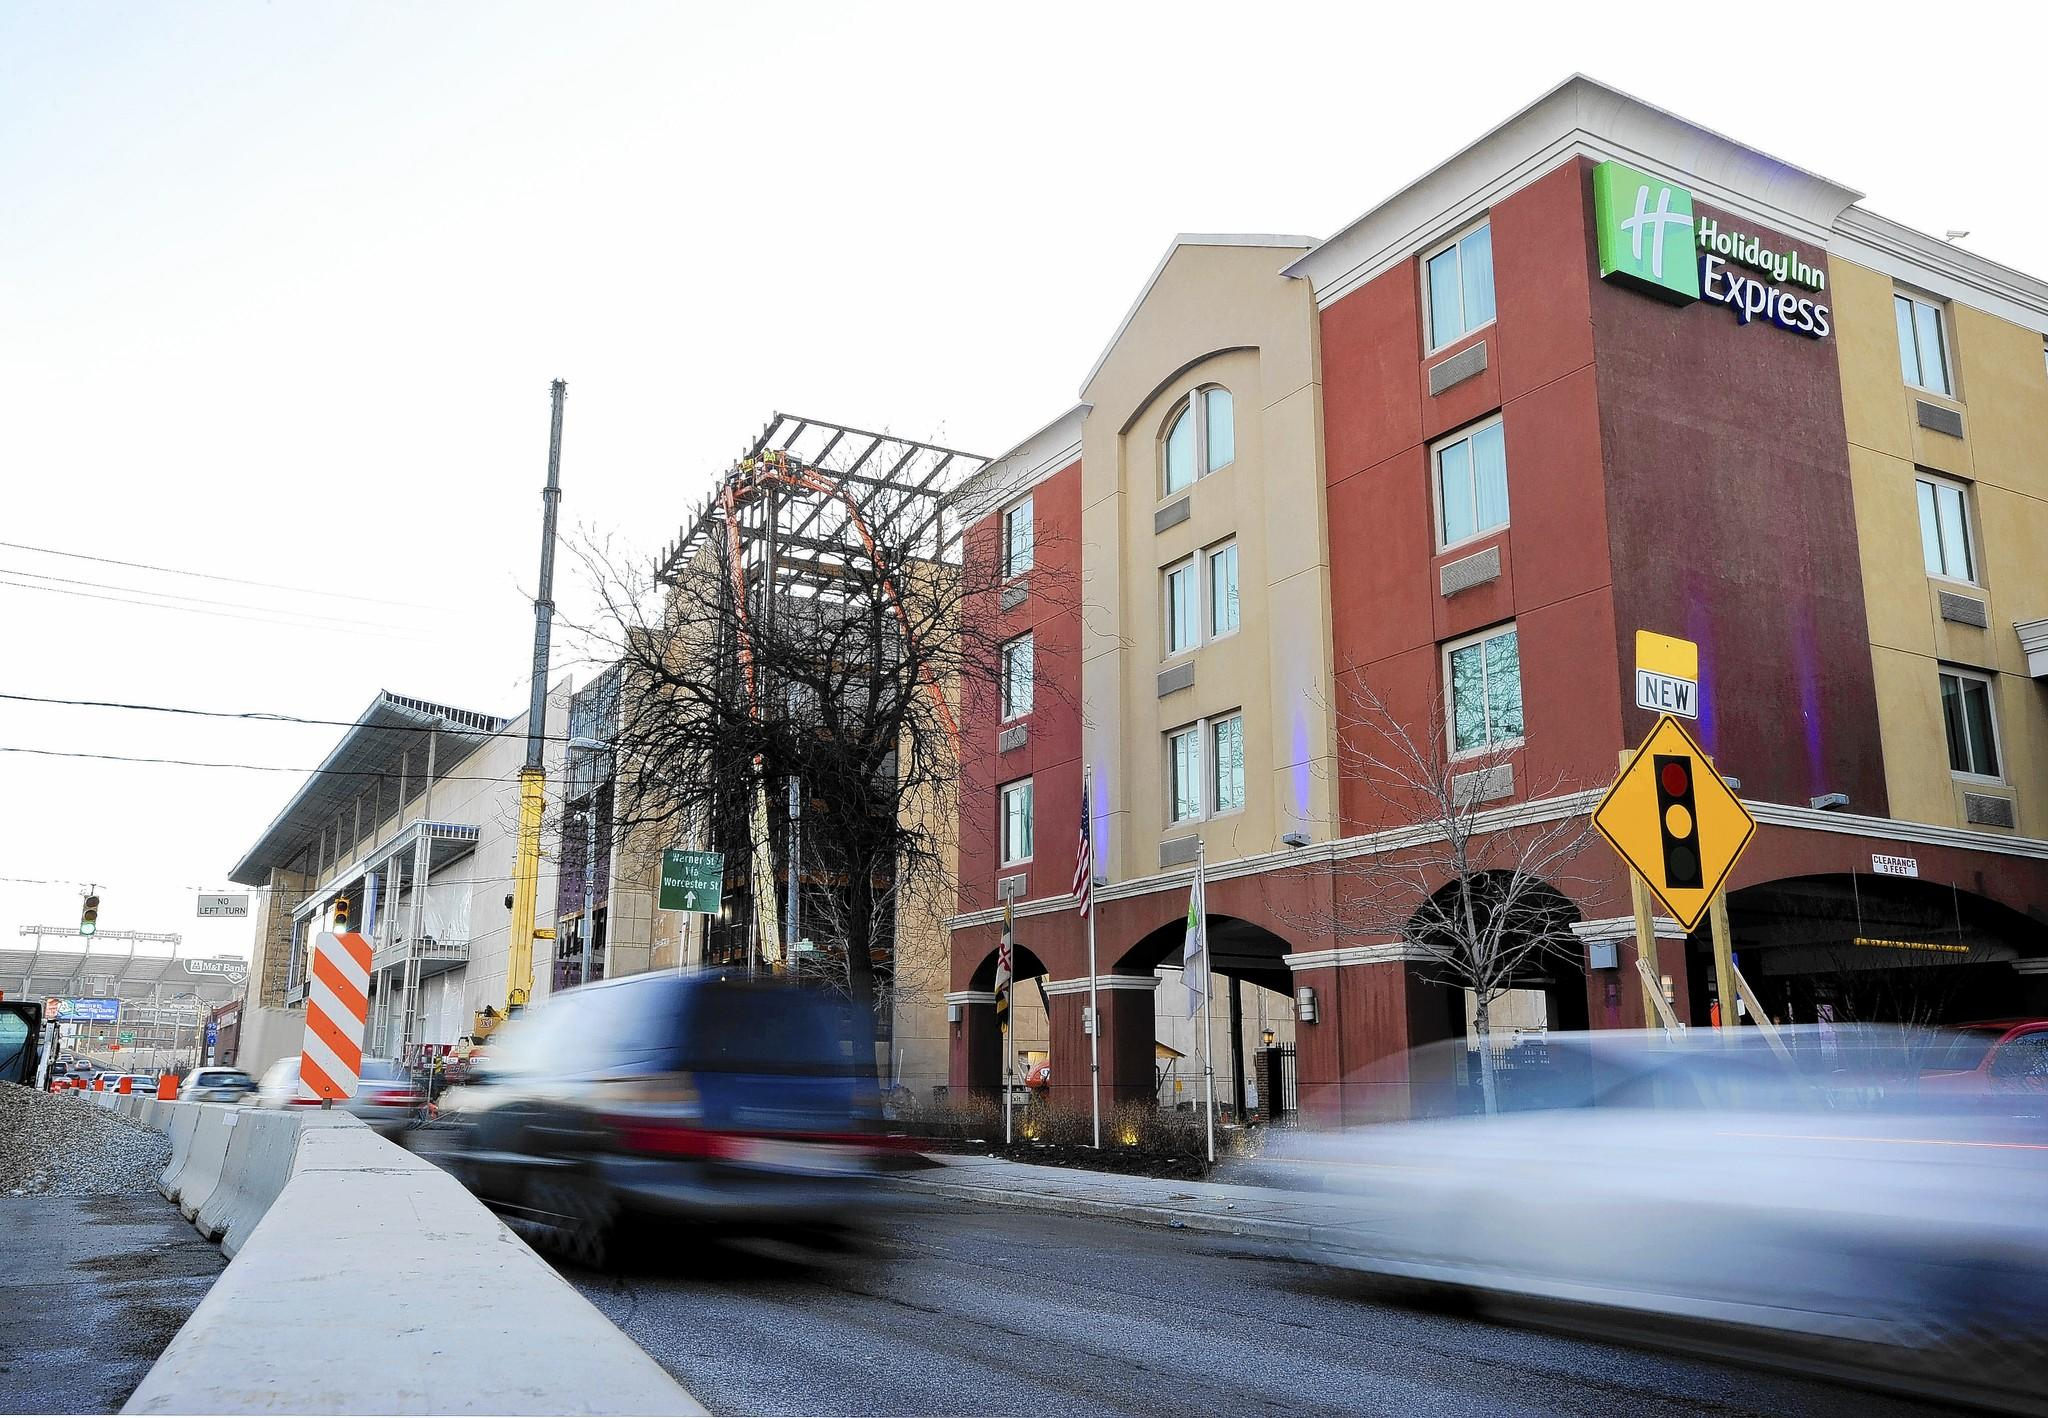 A Holiday Inn is already located next to the Horseshoe Casino on Russell Street.